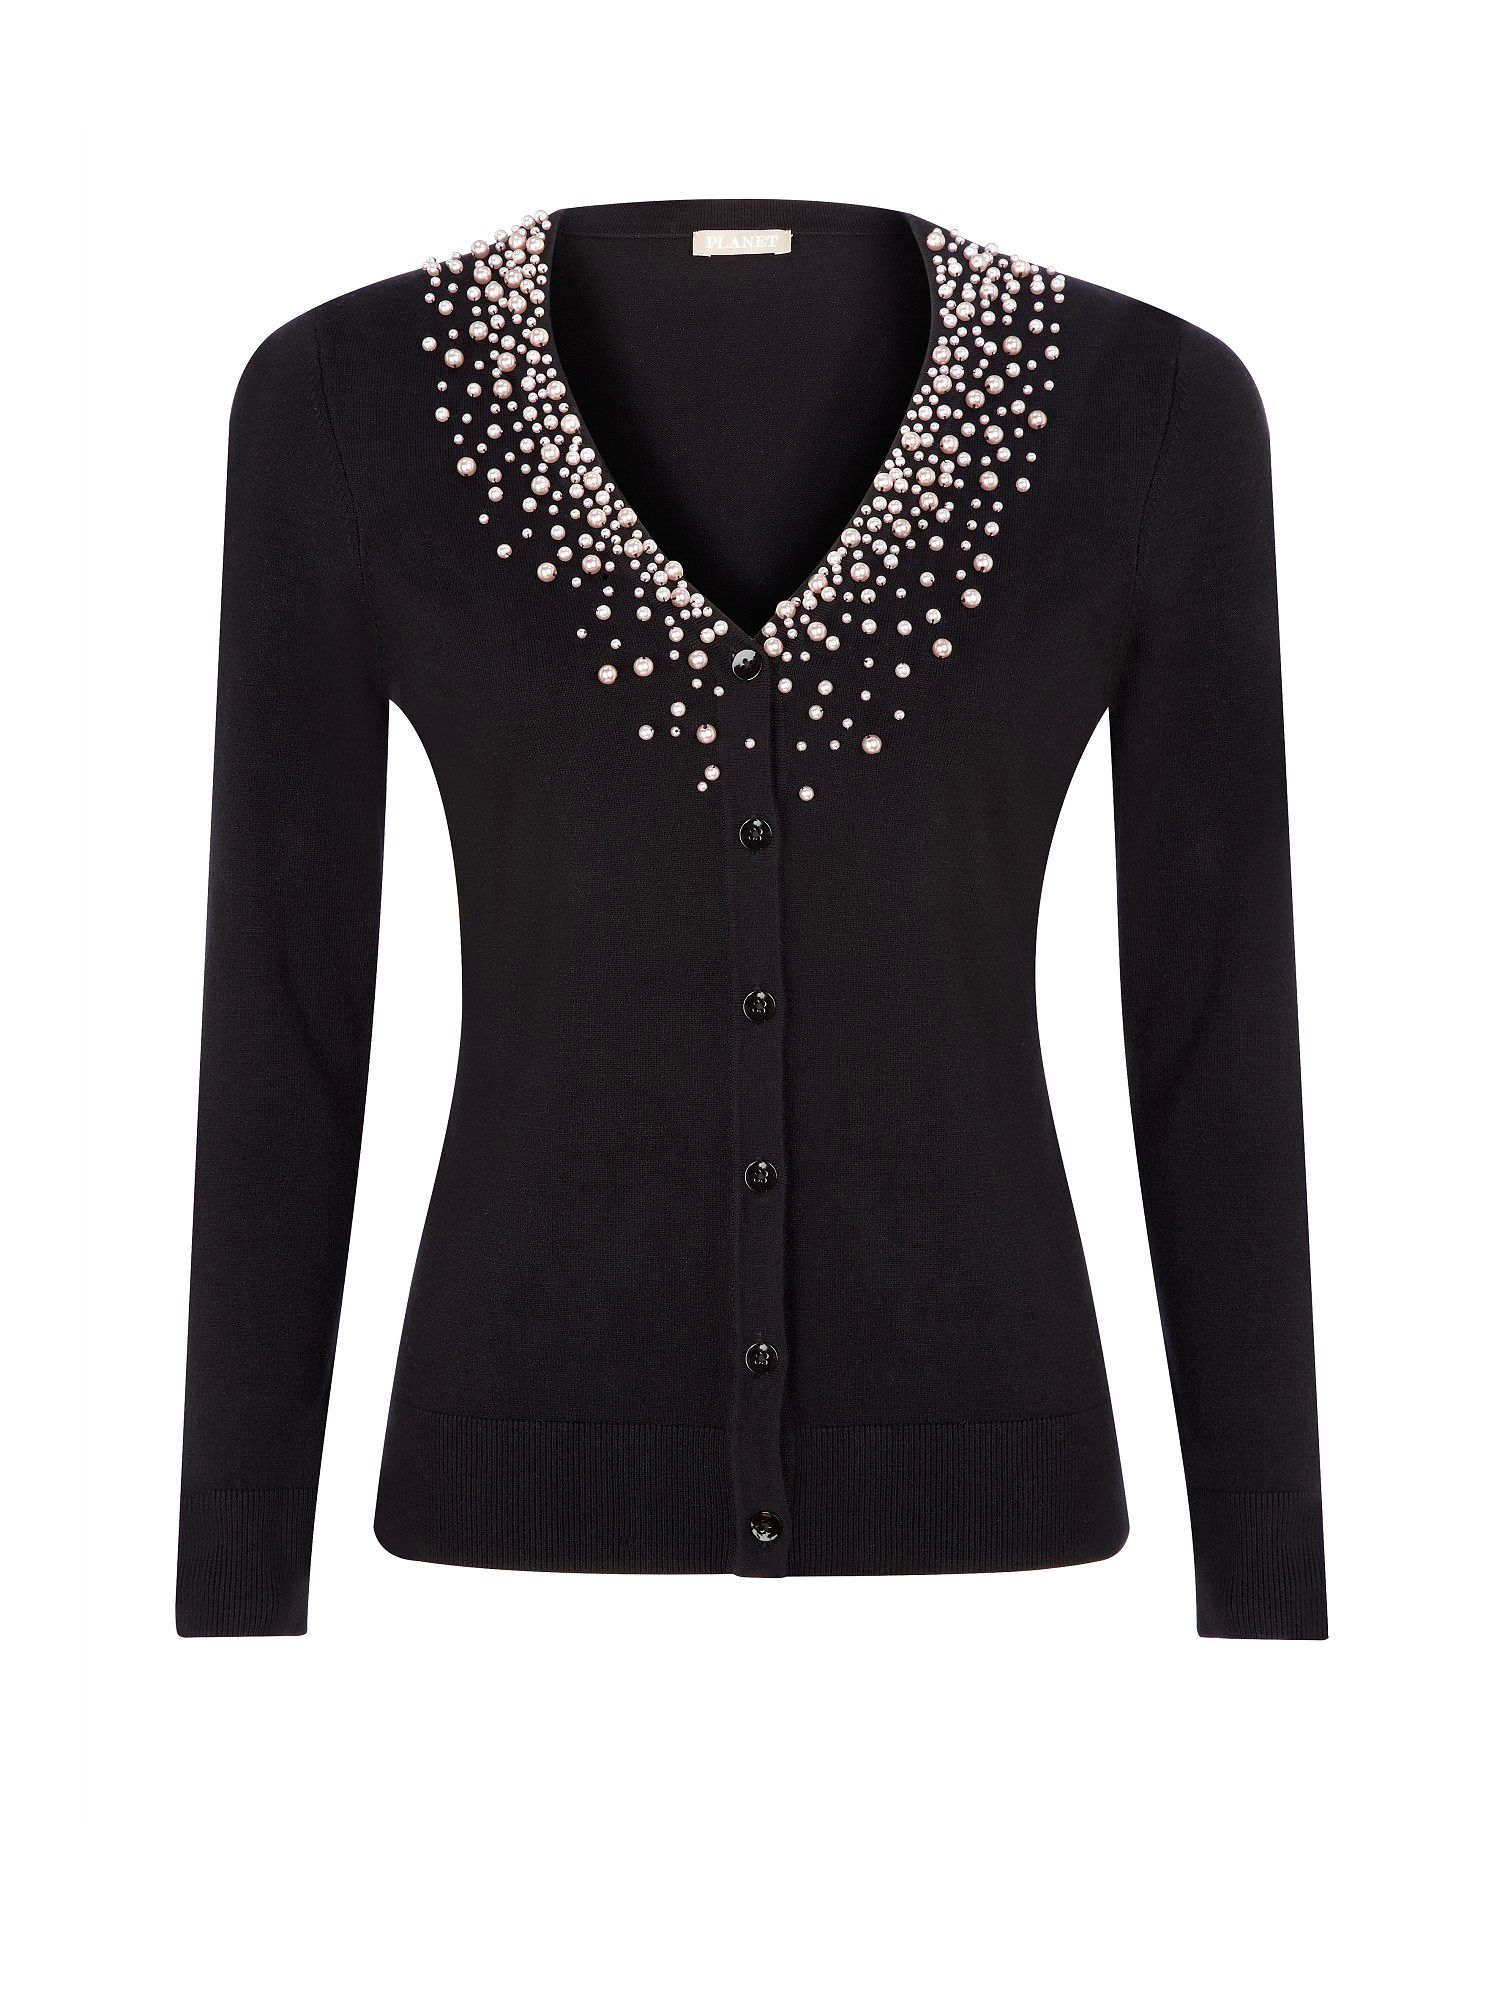 Black embellished cardigan